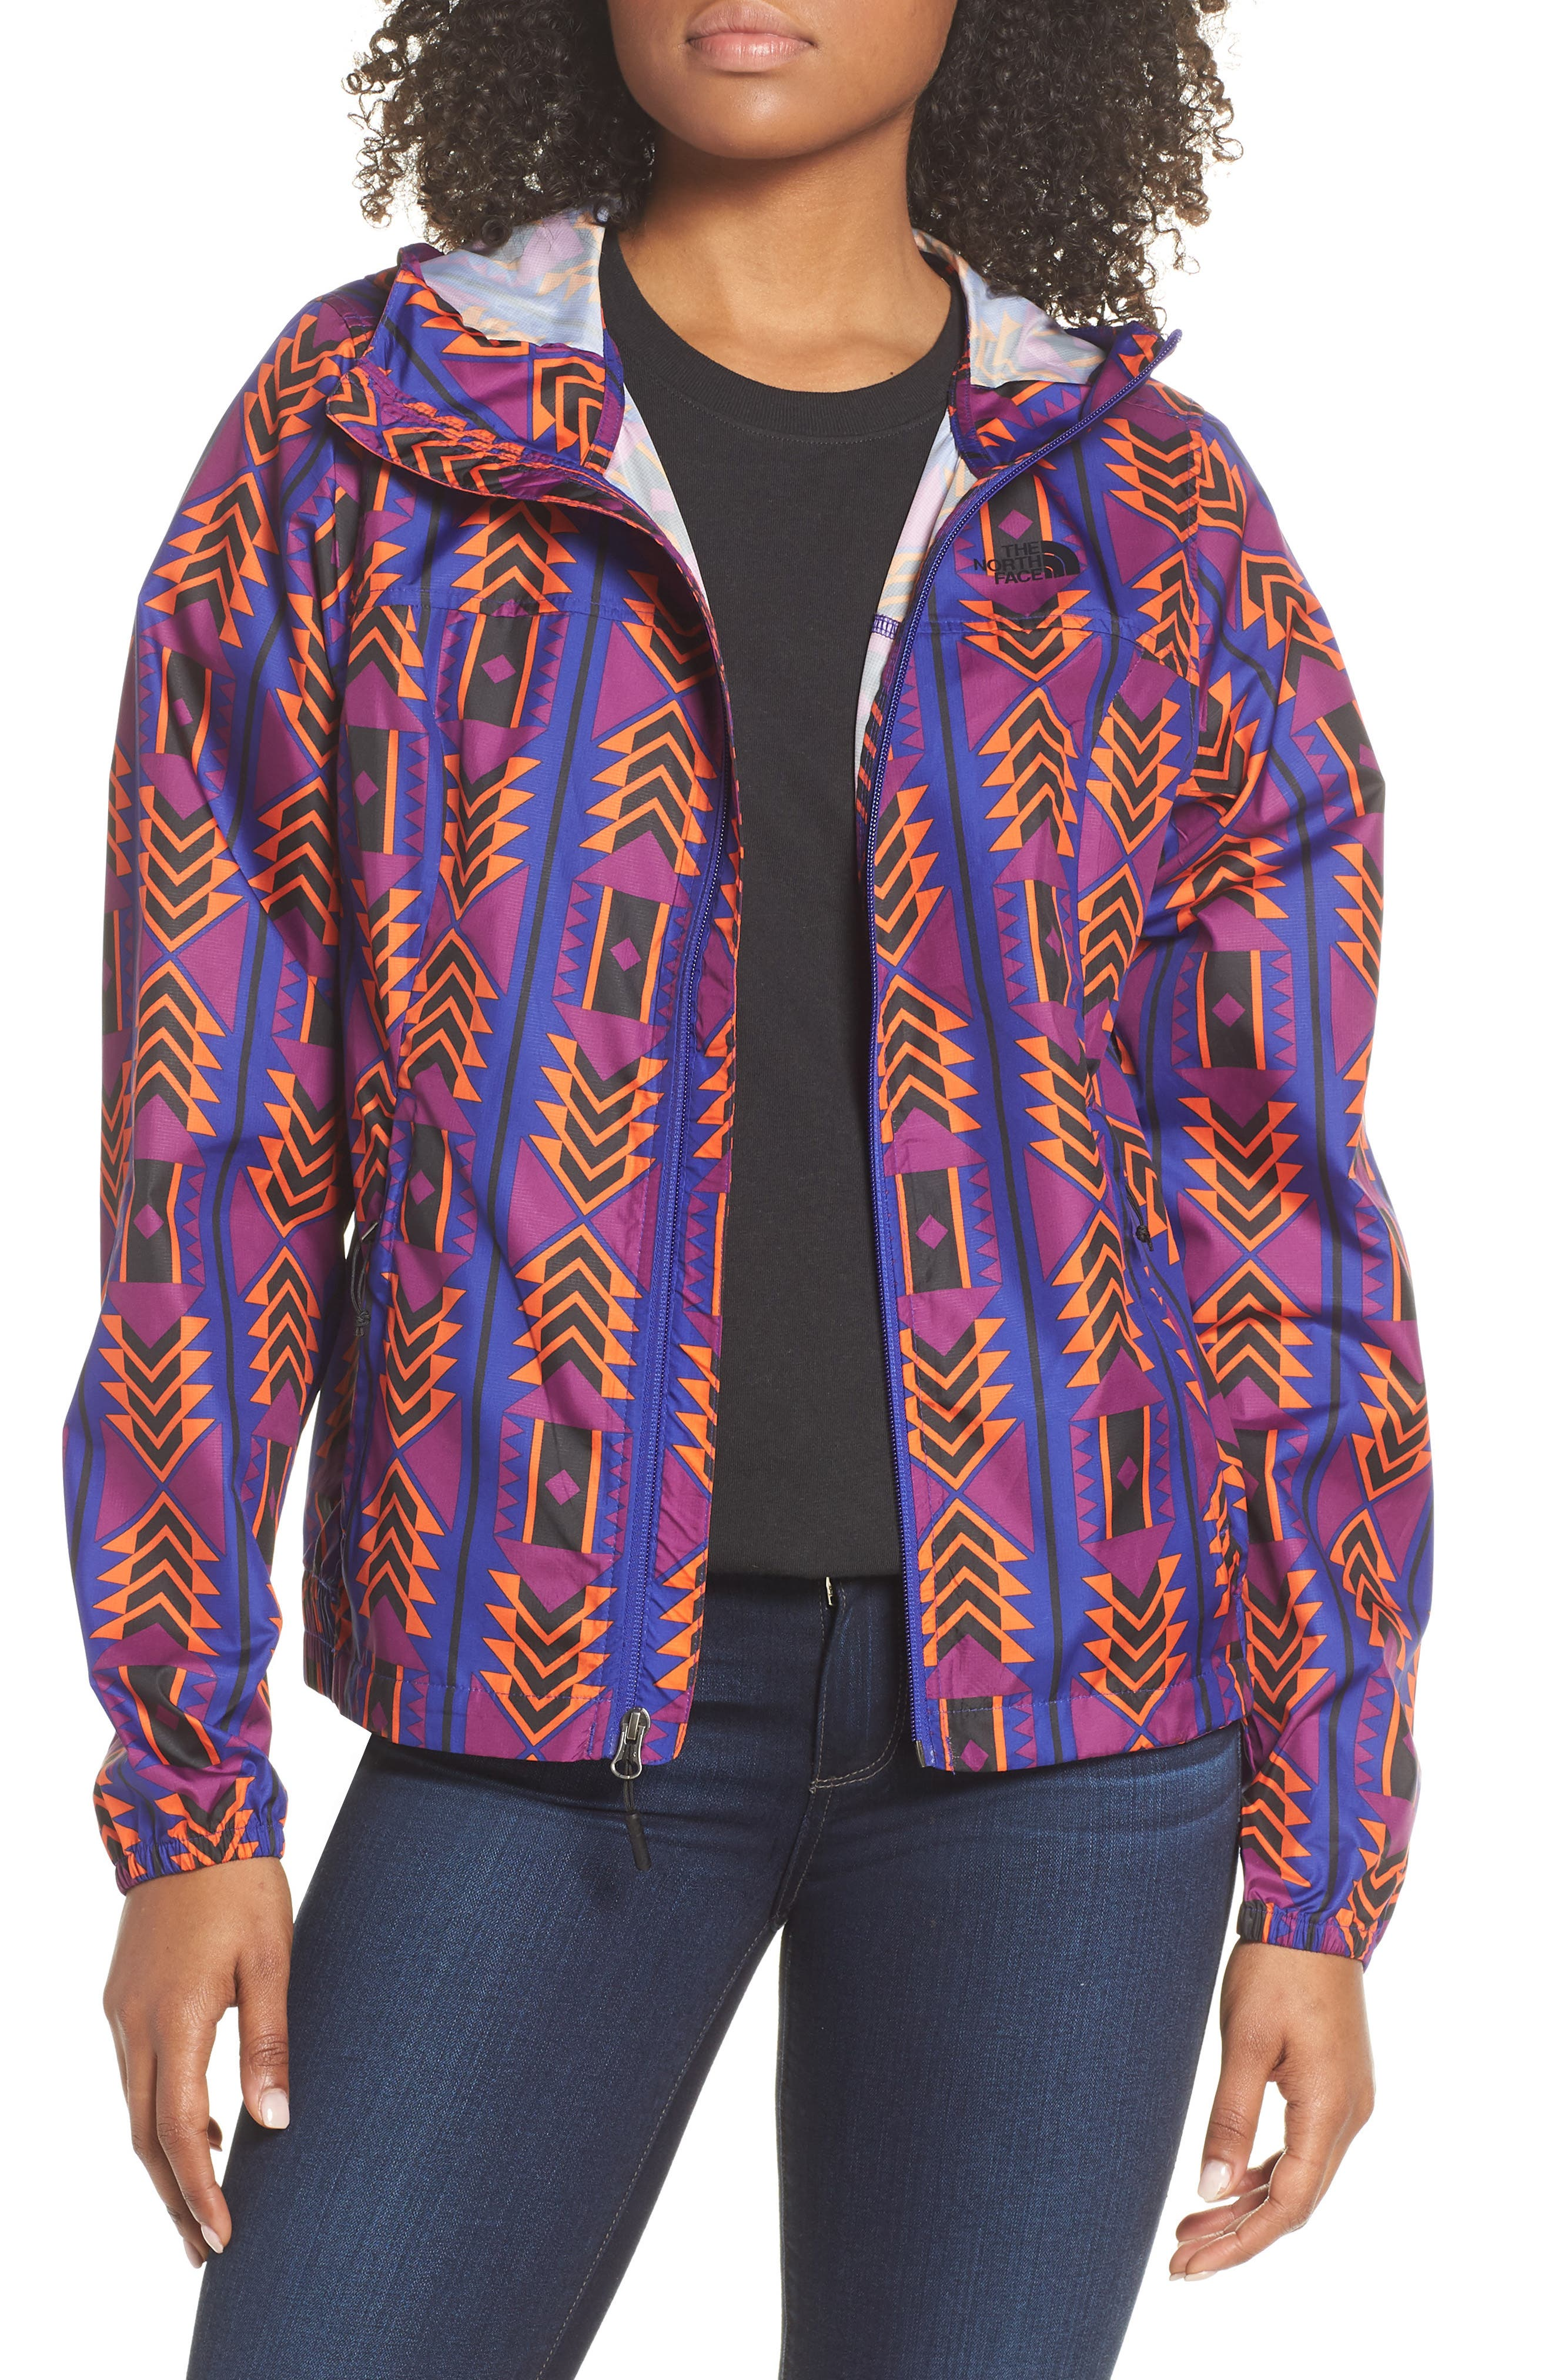 THE NORTH FACE Print Cyclone 3.0 WindWall<sup>®</sup> Jacket, Main, color, AZTEC BLUE 1992 RAGE PRINT